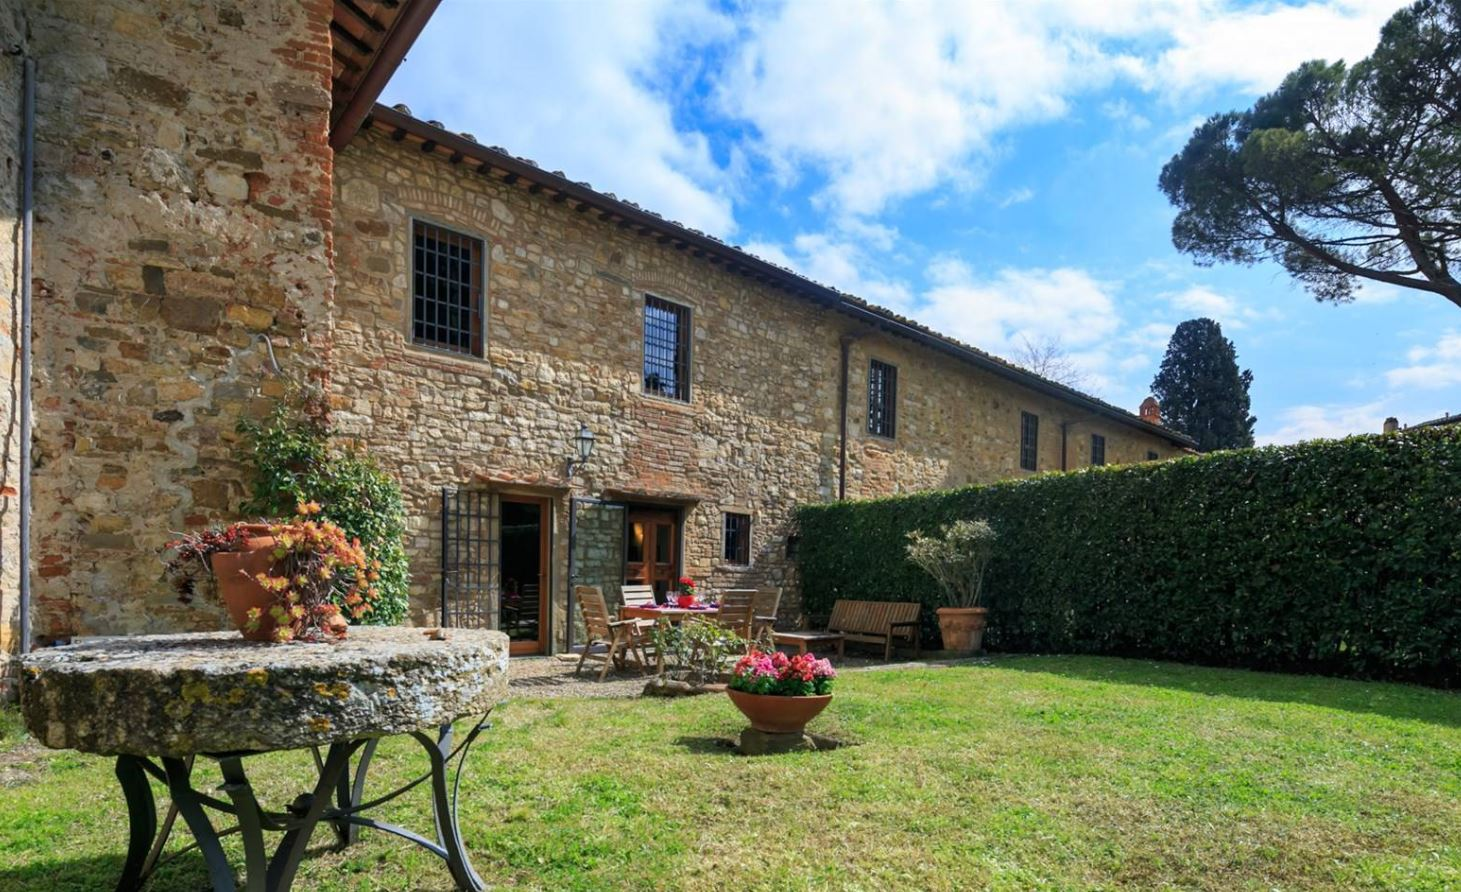 Homes for sale in Florence, Italy